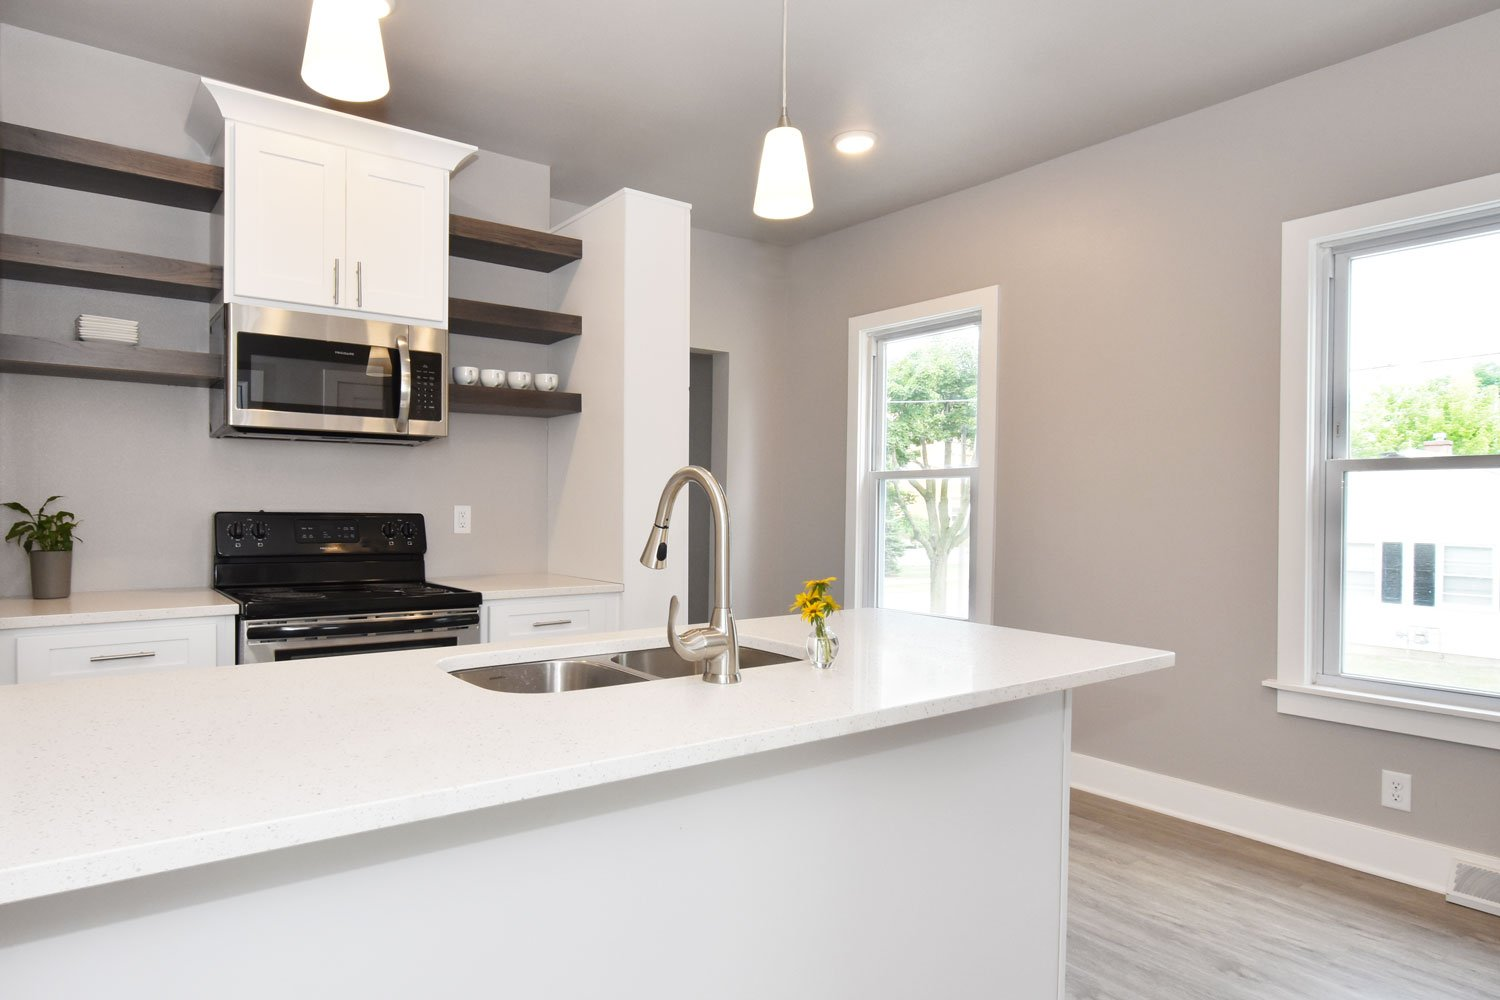 Wauwatosa White kitchen island with open shelving and quartz counters